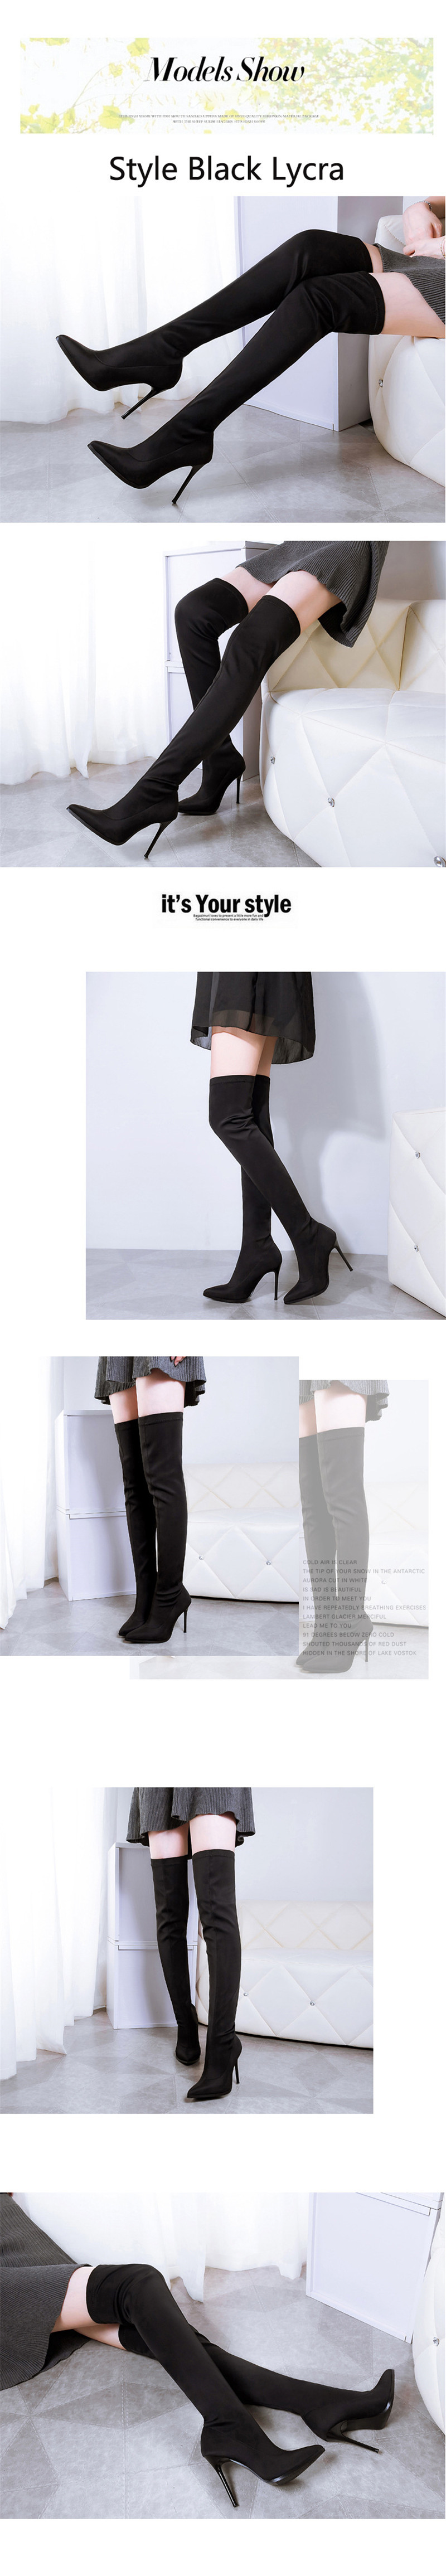 D Knight Sexy Pointed Toe Women Stiletto High Heel Over The Knee Boots Fashion Nightclub Stretch Women's Thigh High Boots Shoes (2)